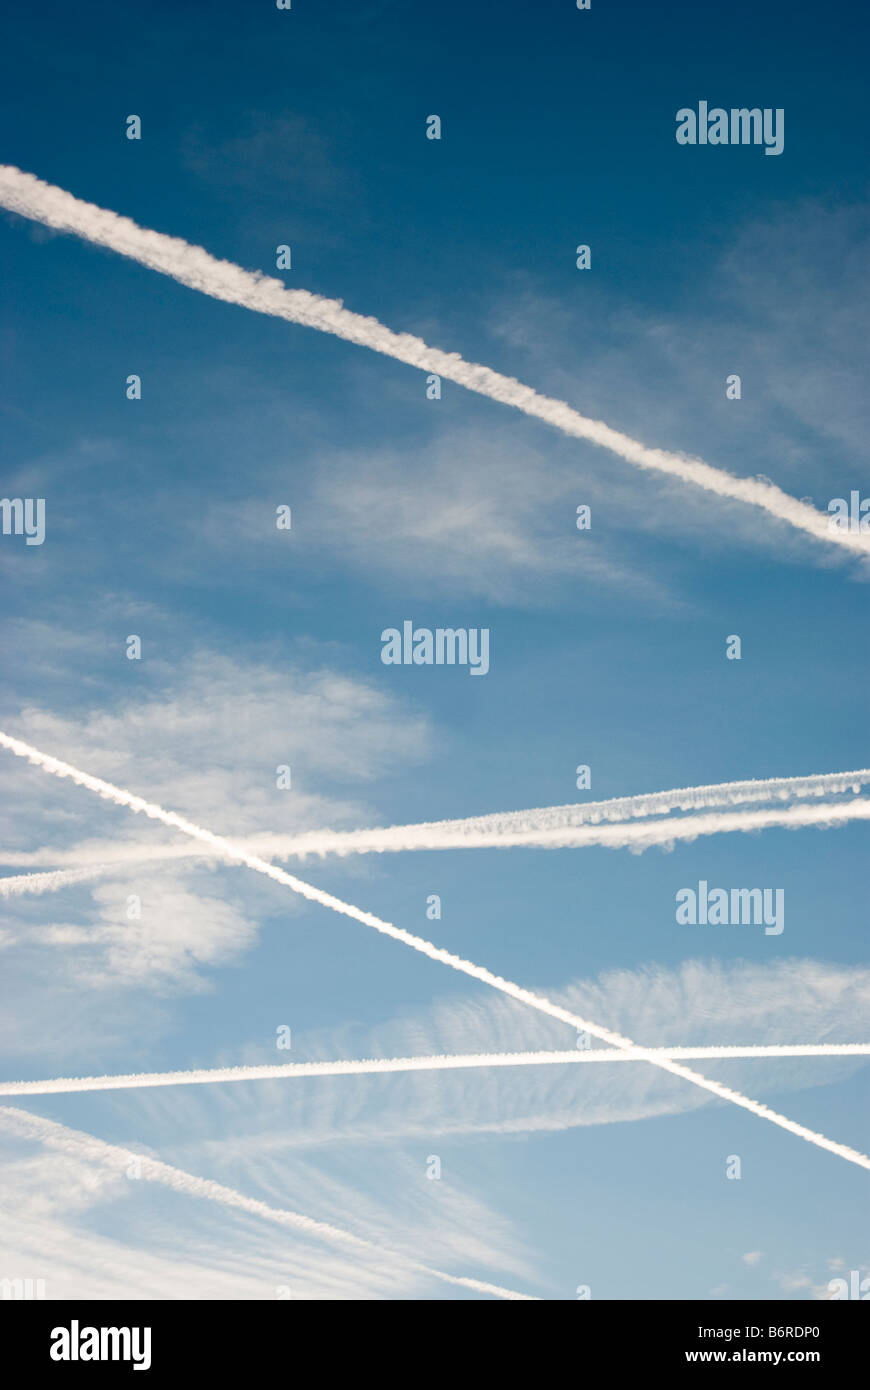 Condensation trails from commercial aircraft flights in a blue sky. - Stock Image